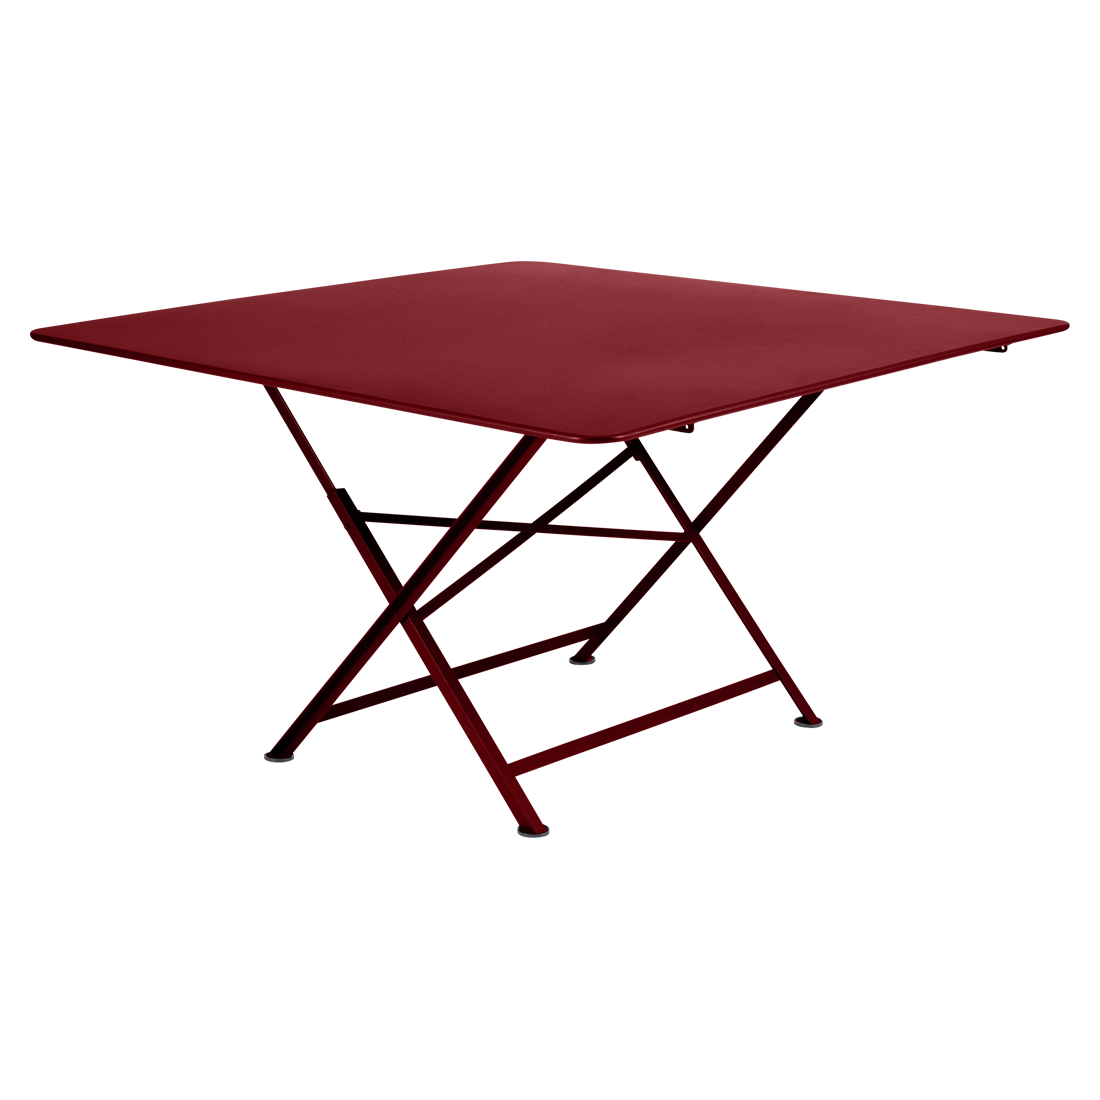 Cargo table garden table for 8 outdoor furniture addthis sharing buttons geotapseo Gallery